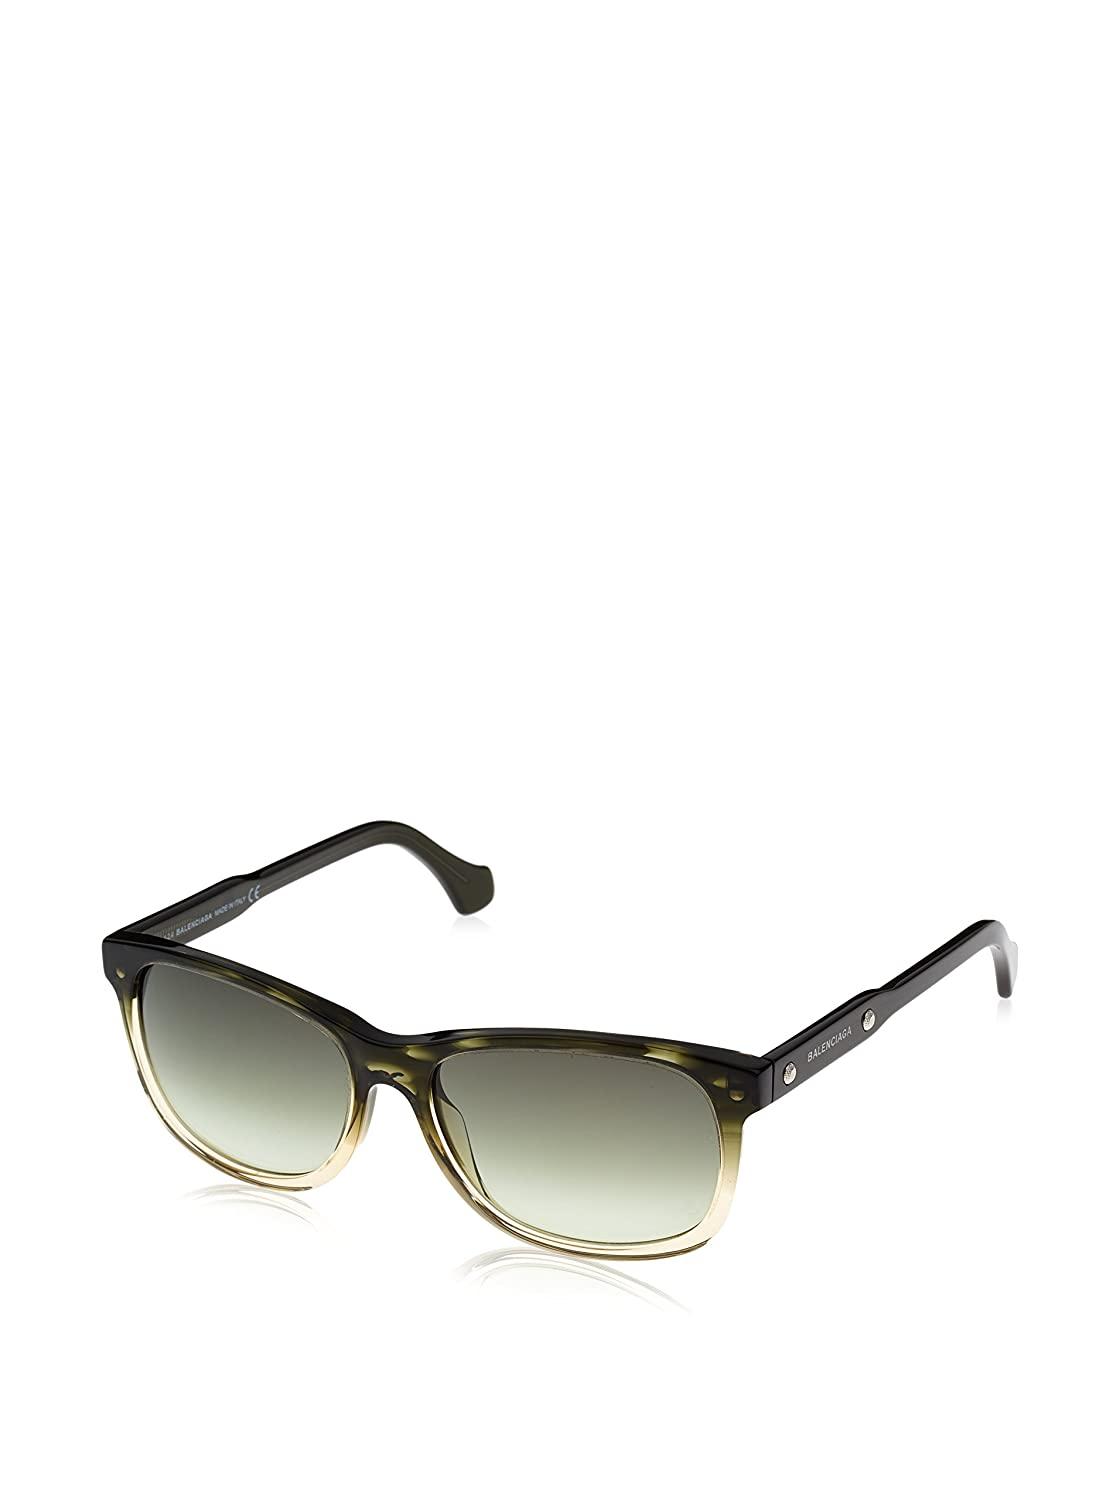 gradient green Sunglasses Balenciaga BA 19 BA0019 98P dark green//other